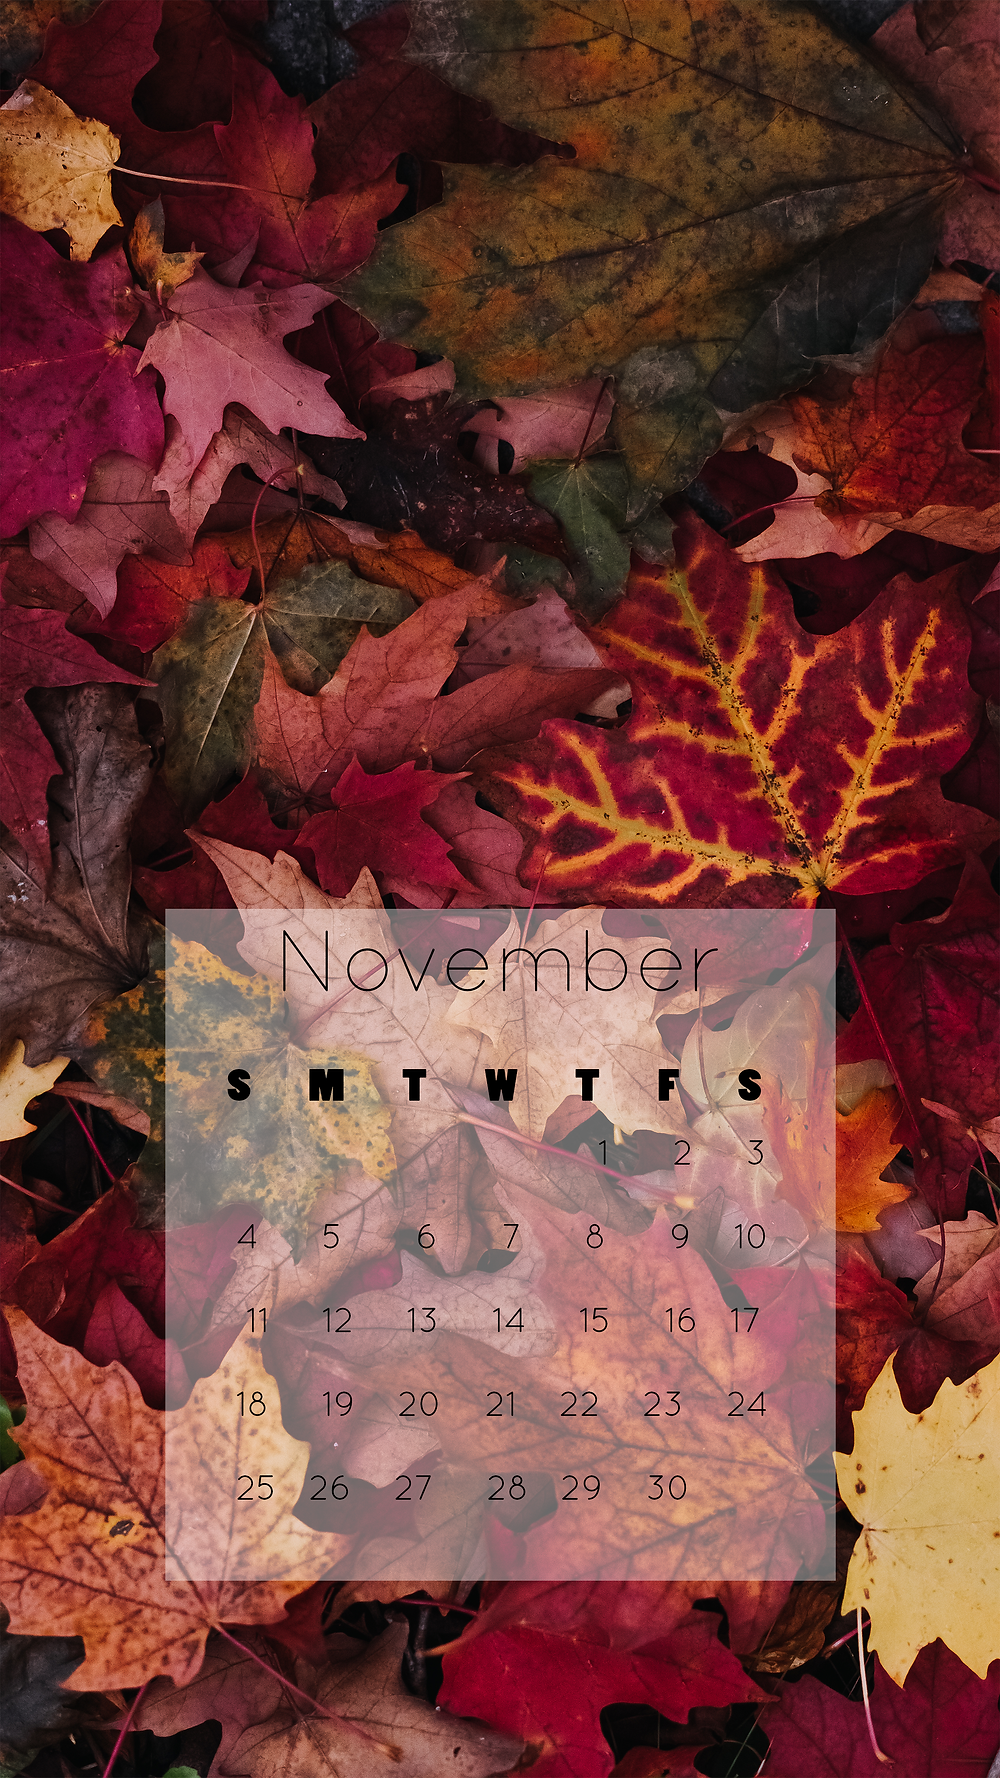 beautiful fall leaves iphone wallpaper November 2018 calendar free download